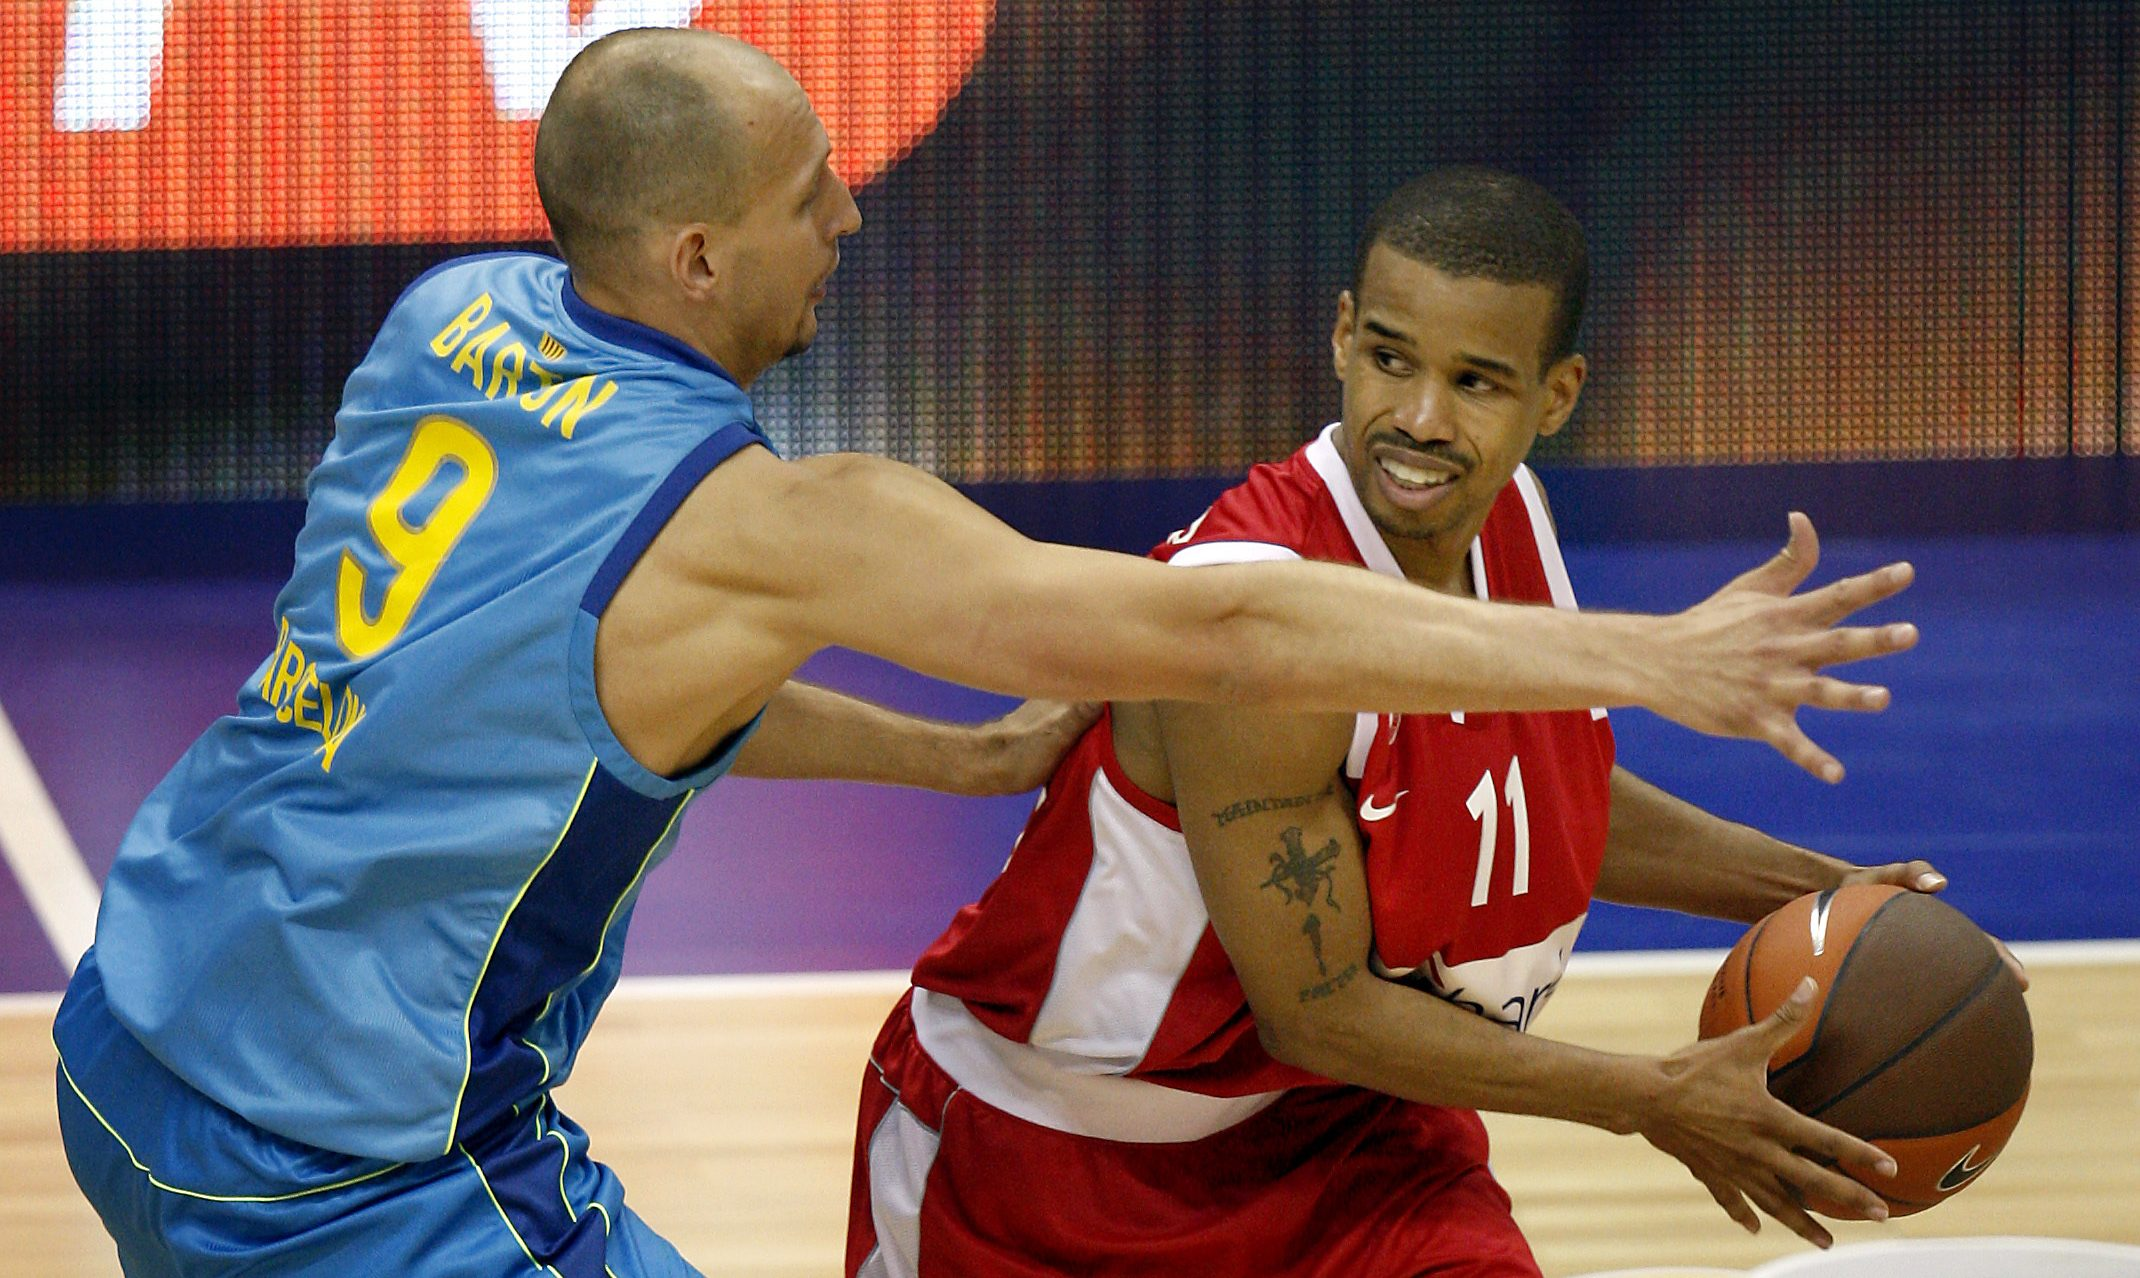 Lynn Greer (right) of Olympiacos Piraeus looks to pass while guarded by Lubos Barton of Regal FC Barcelona during a Euroleague Basketball final-four game in Berlin in May 2009.